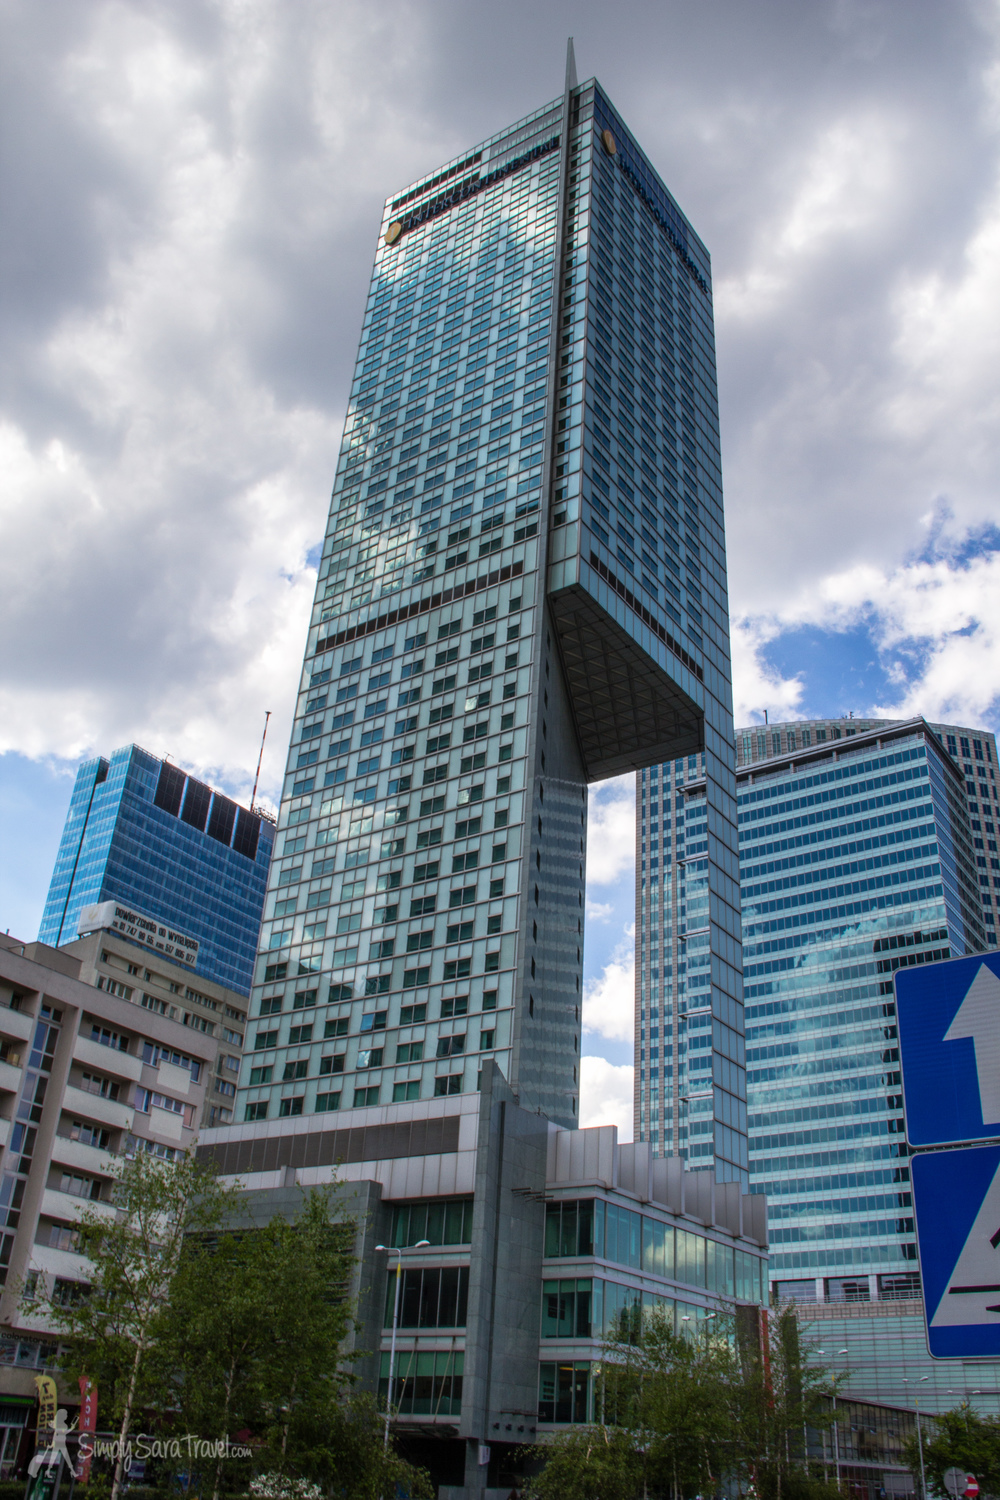 This unique building is the  InterContinental Hotel , a five-star hotel. Its unusual cut-out bothered Michael with its inefficiency,  yet I appreciated the character it added to Warsaw's skyline. (Typical engineer vs English literature degree debates...)